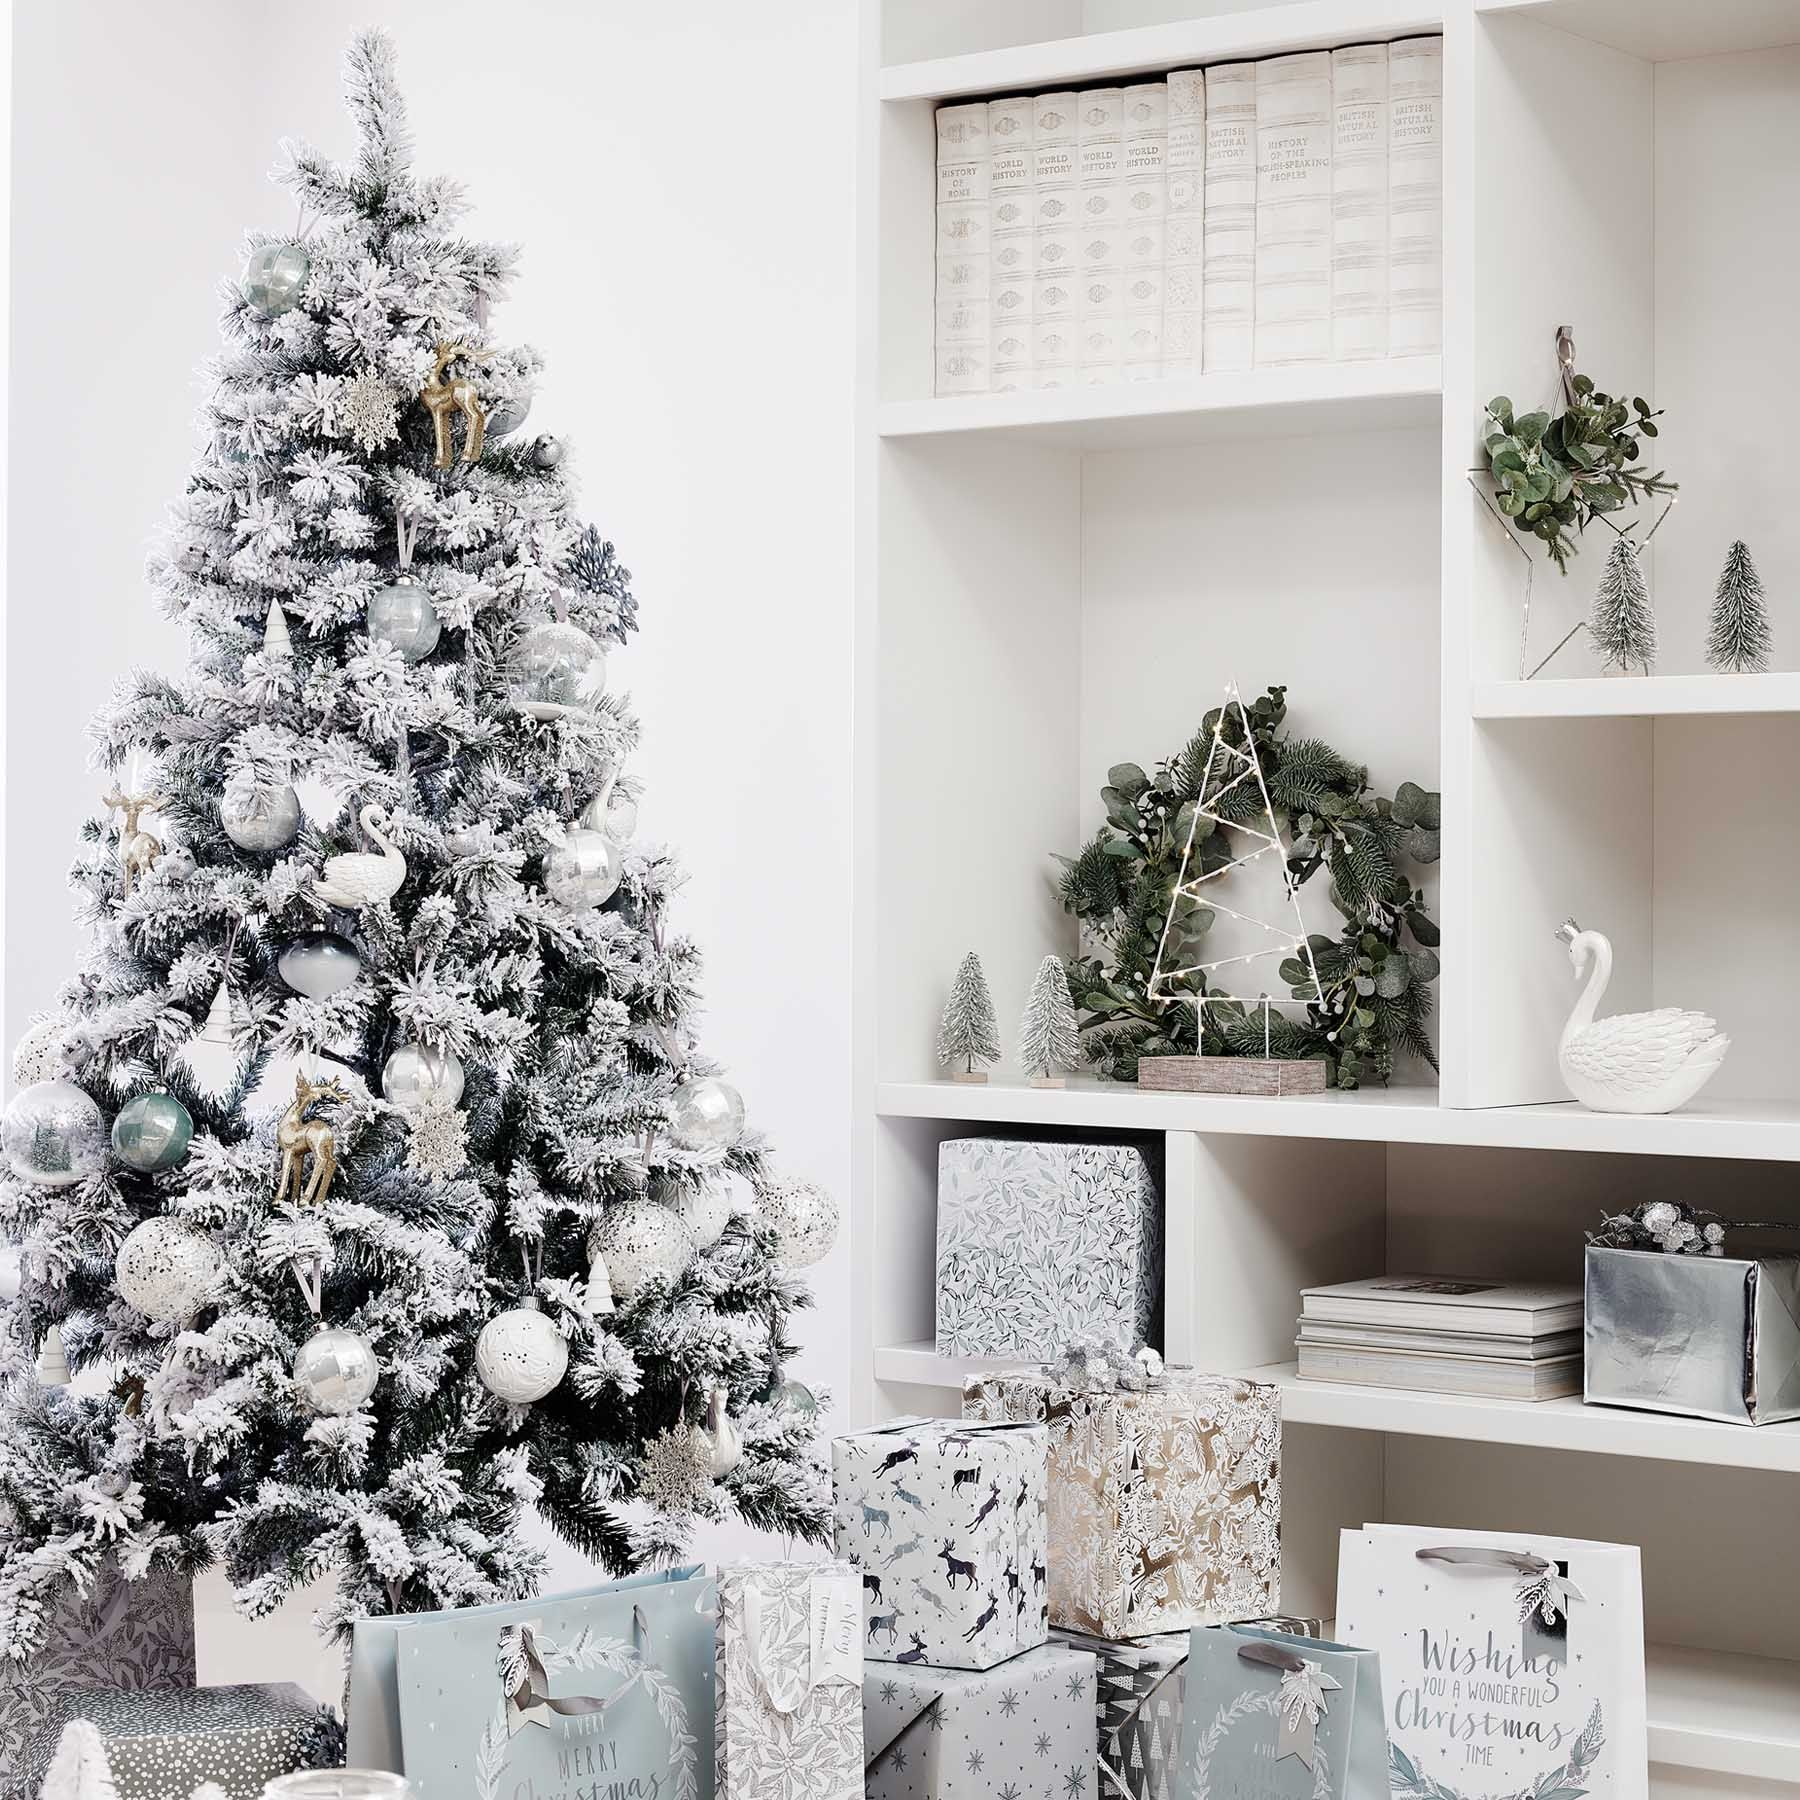 The Range Christmas Tree Lights: The Winter's Mist Range Gives Modern Silver An Organic